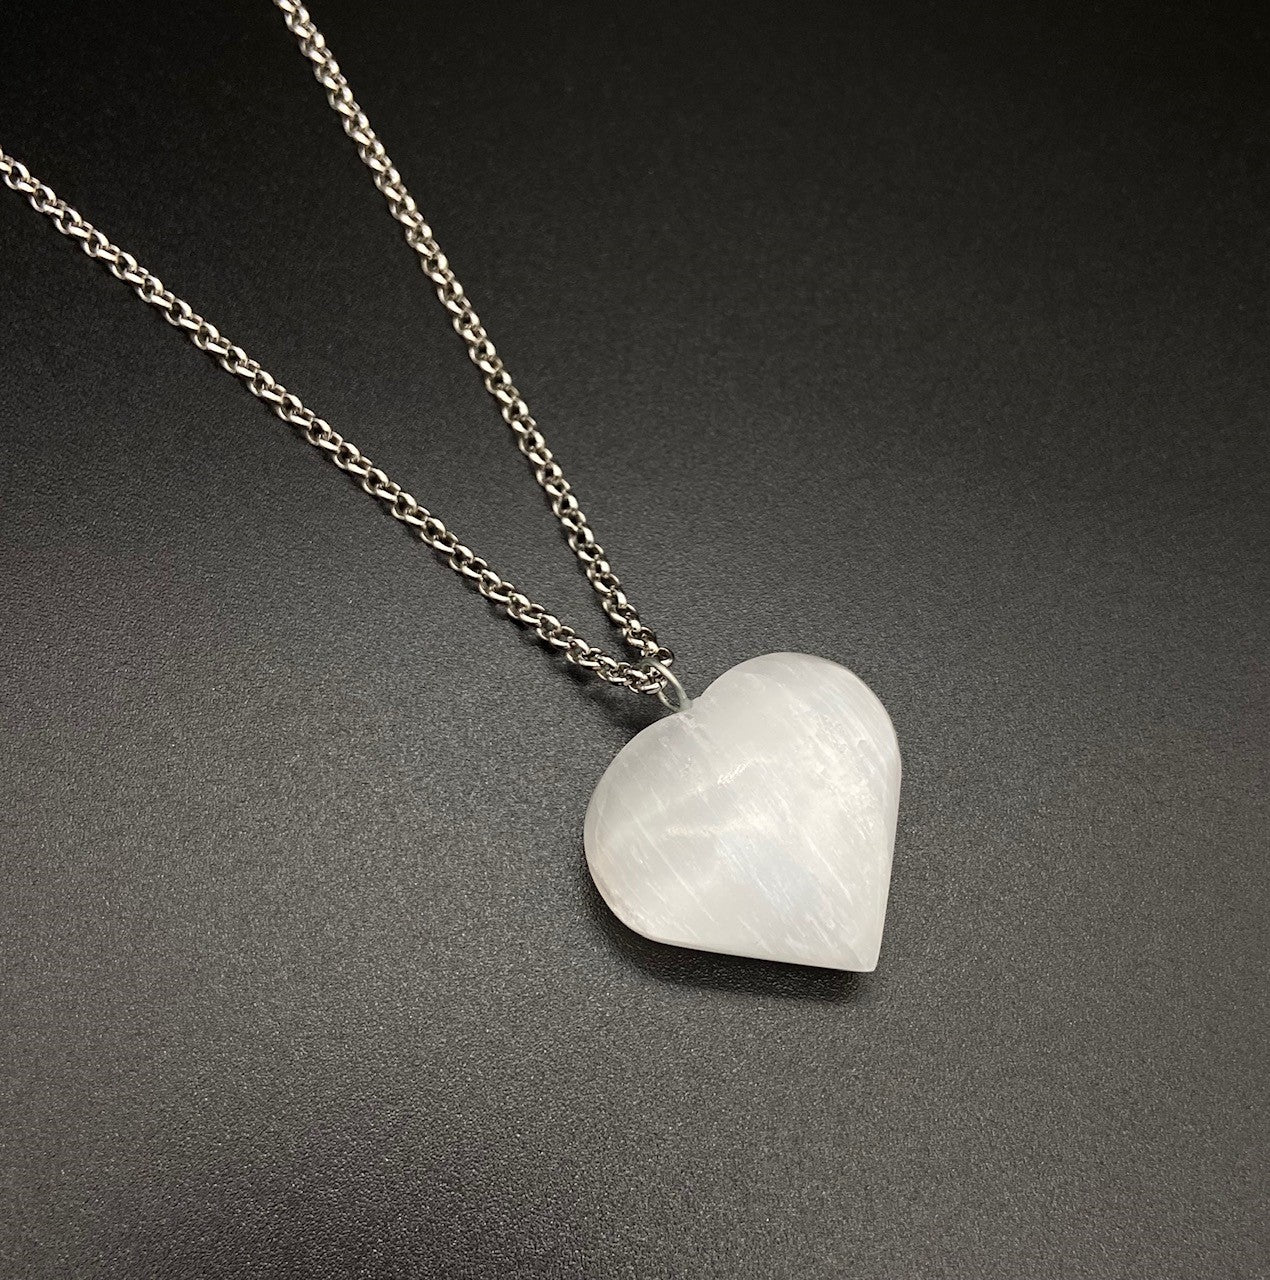 Natural Selenite Heart Gemstone Crystal Pendant Necklace